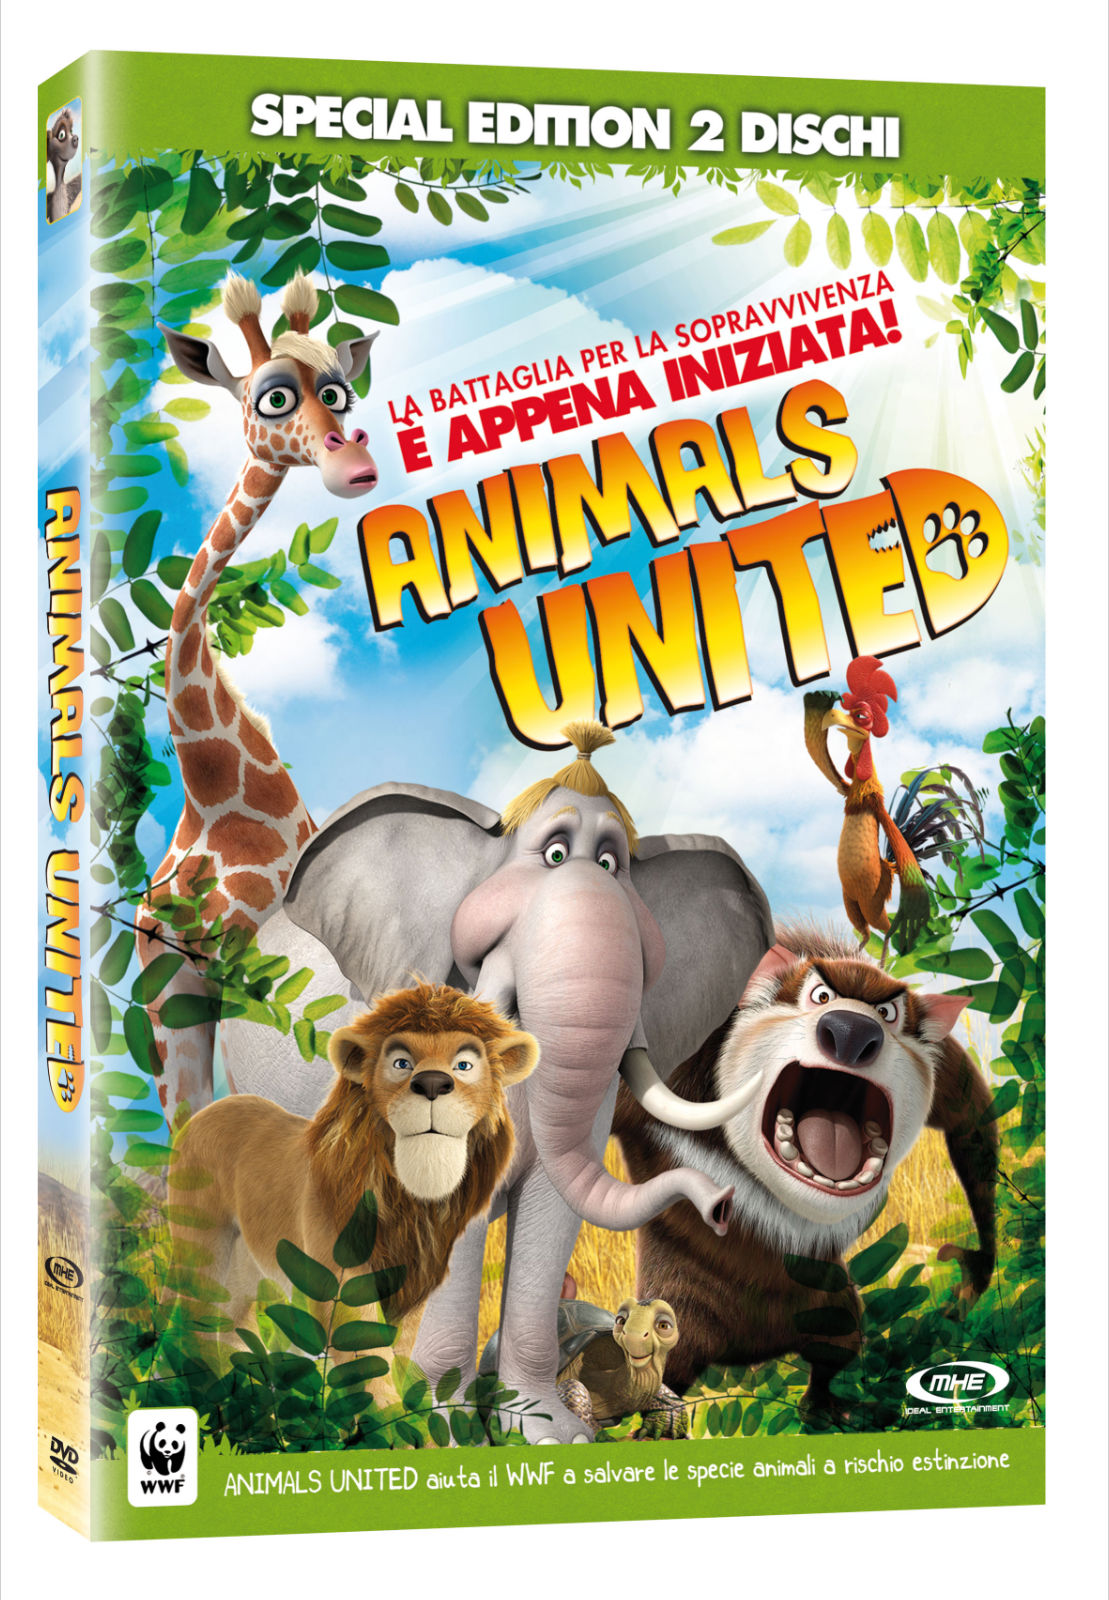 Animals United Copertina DVD Special Edition